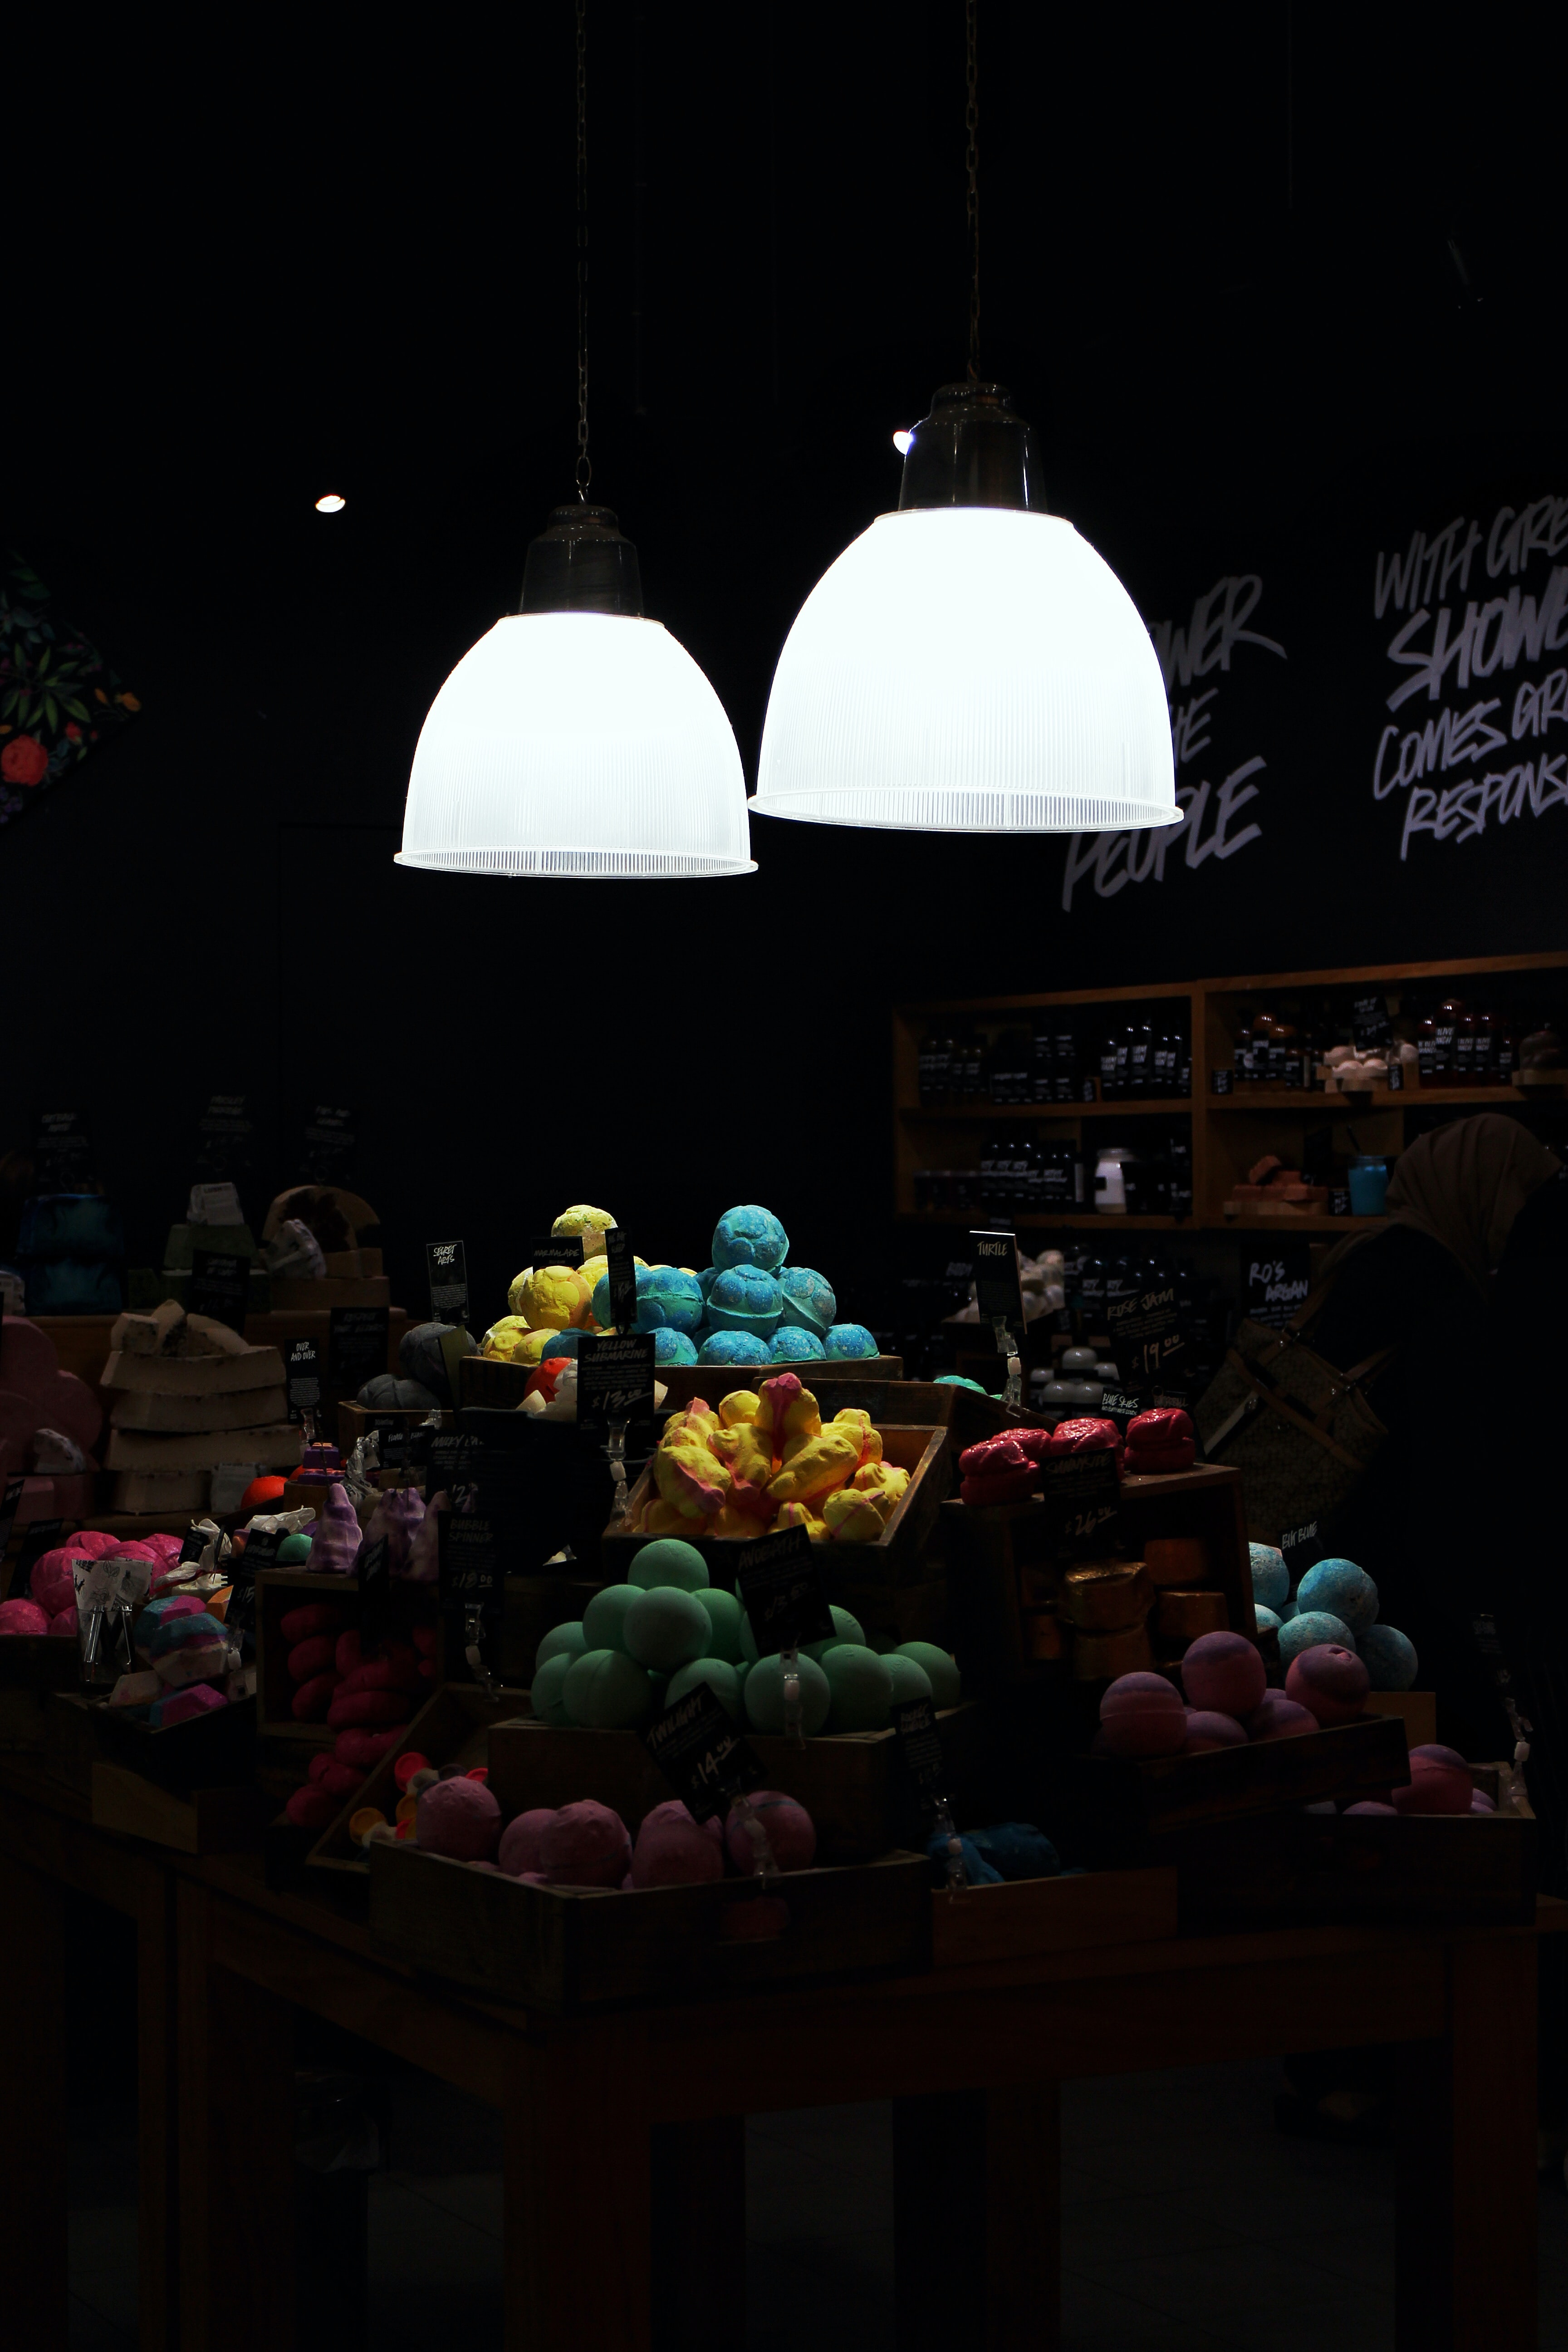 variety of pastries with turned on pendant lamps